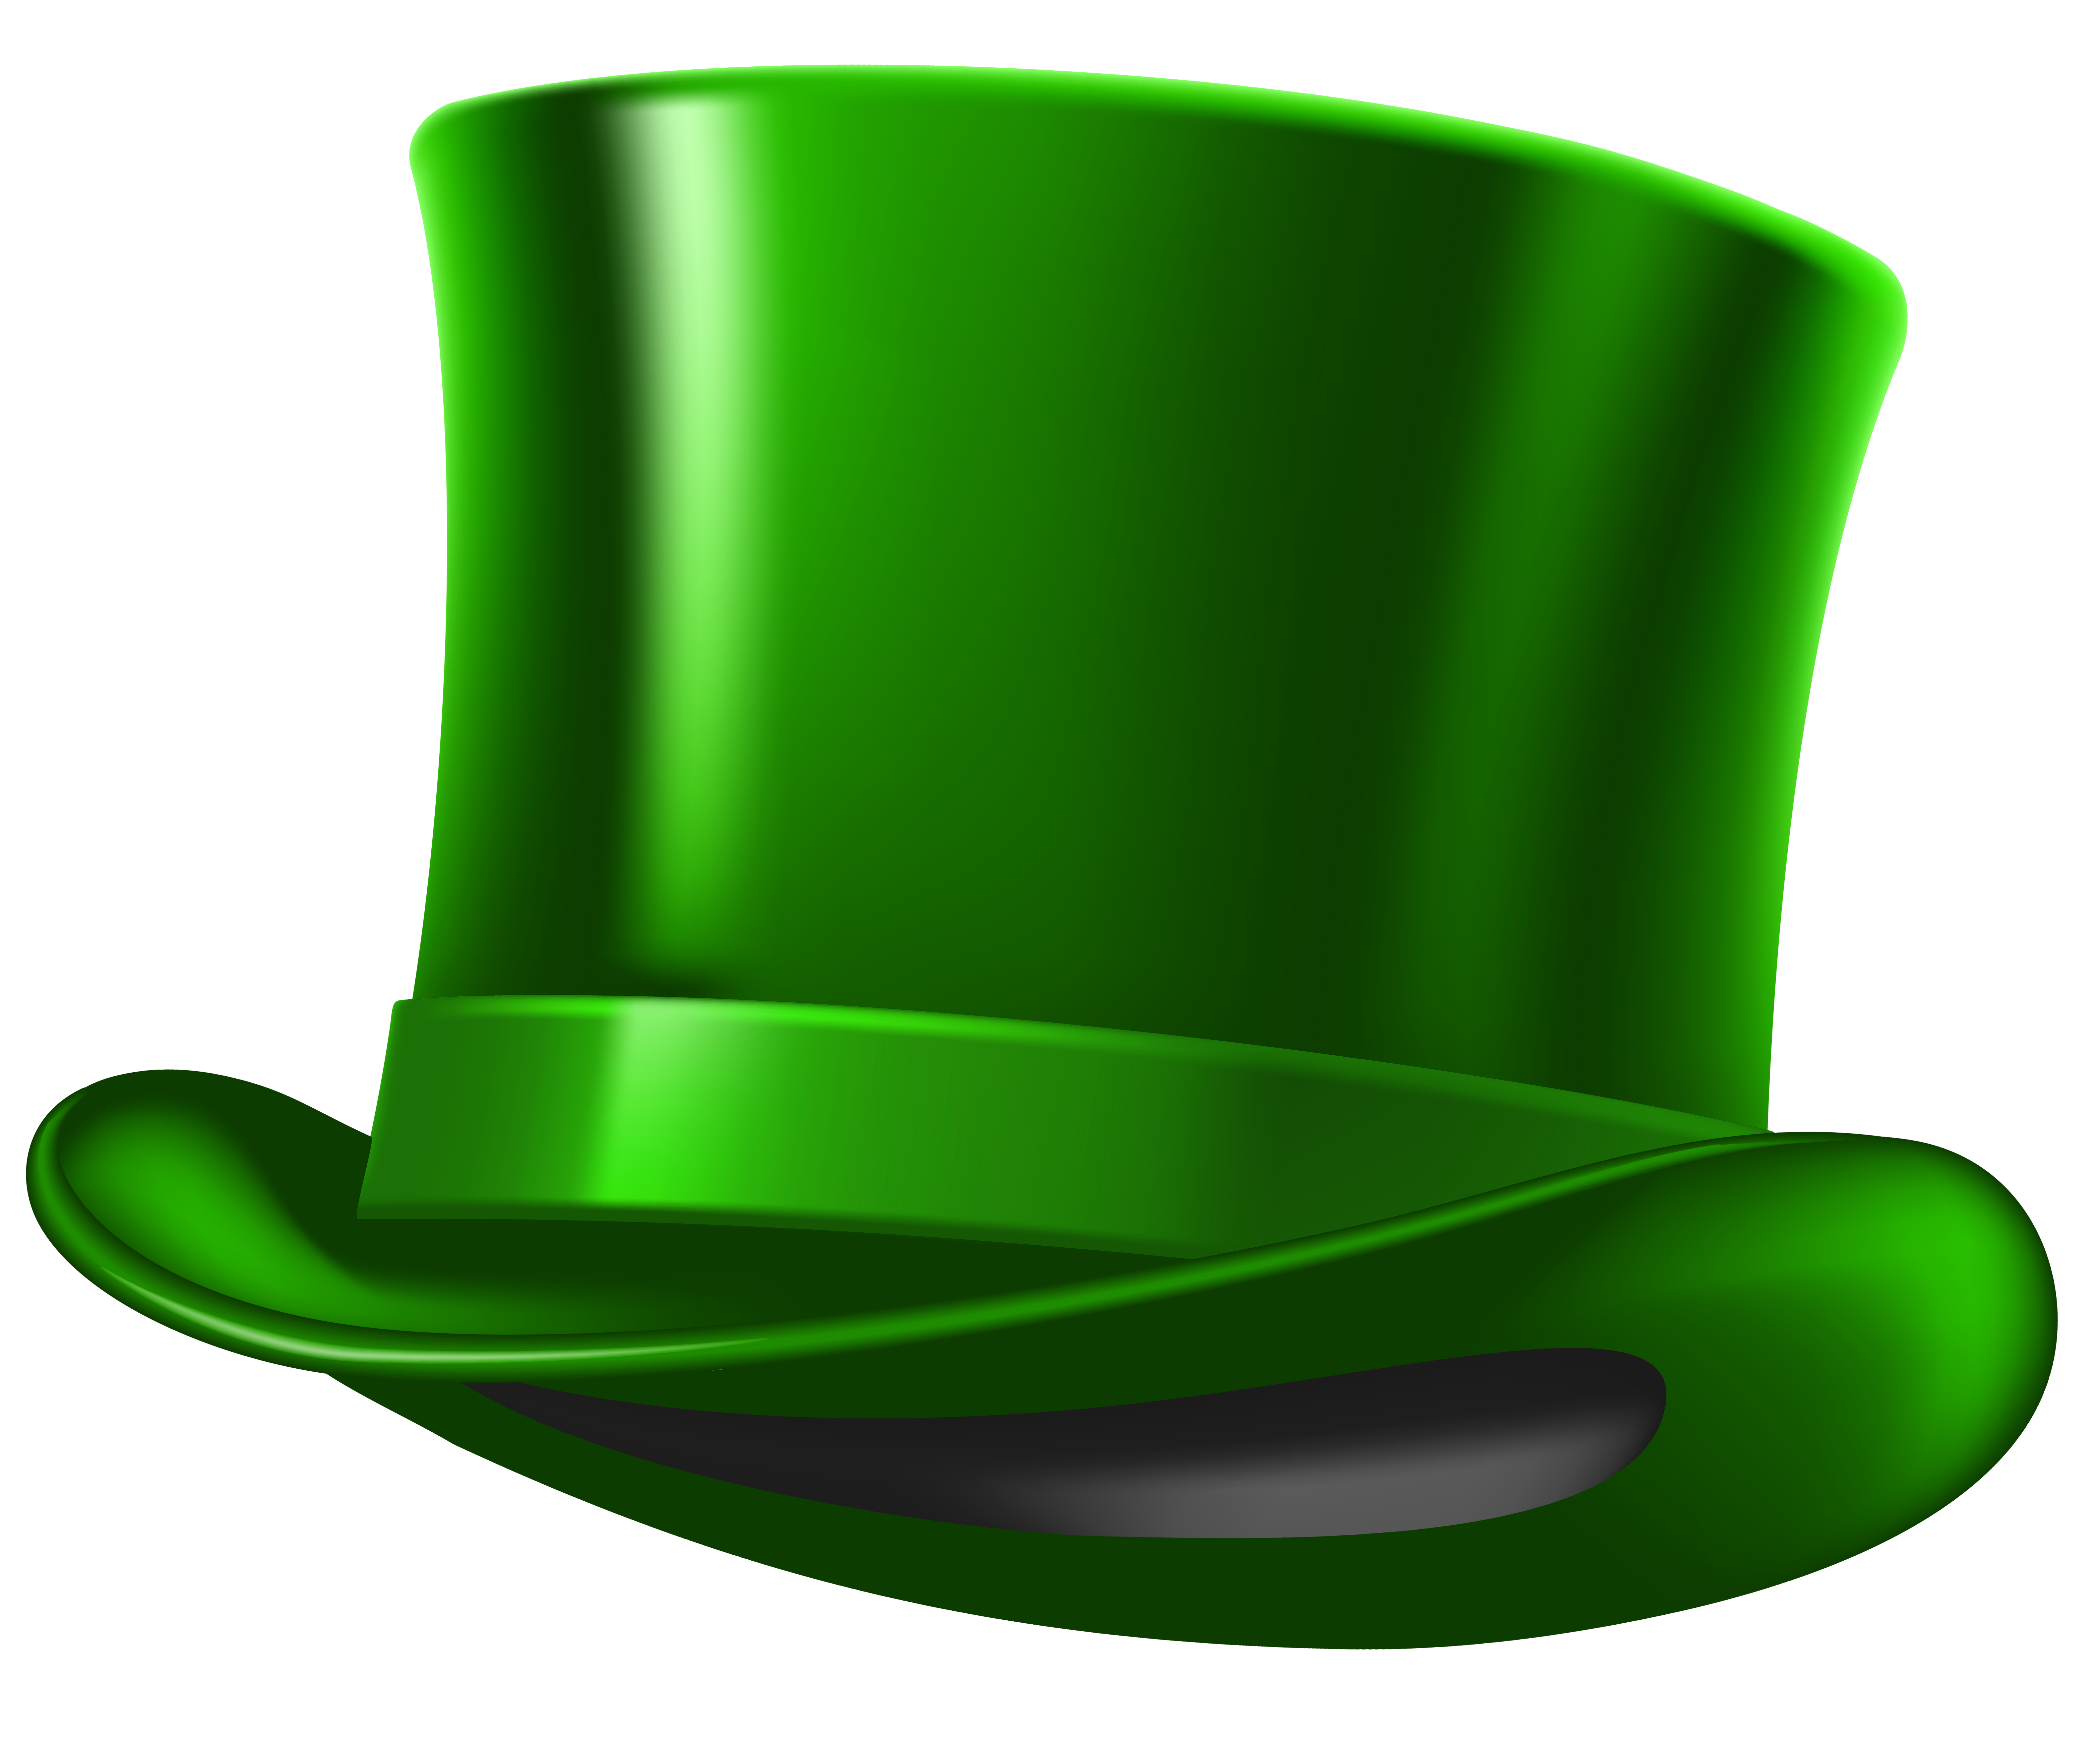 6334x5263 St. Patrick's Day Clipart St Patricks Day Hat Clipart